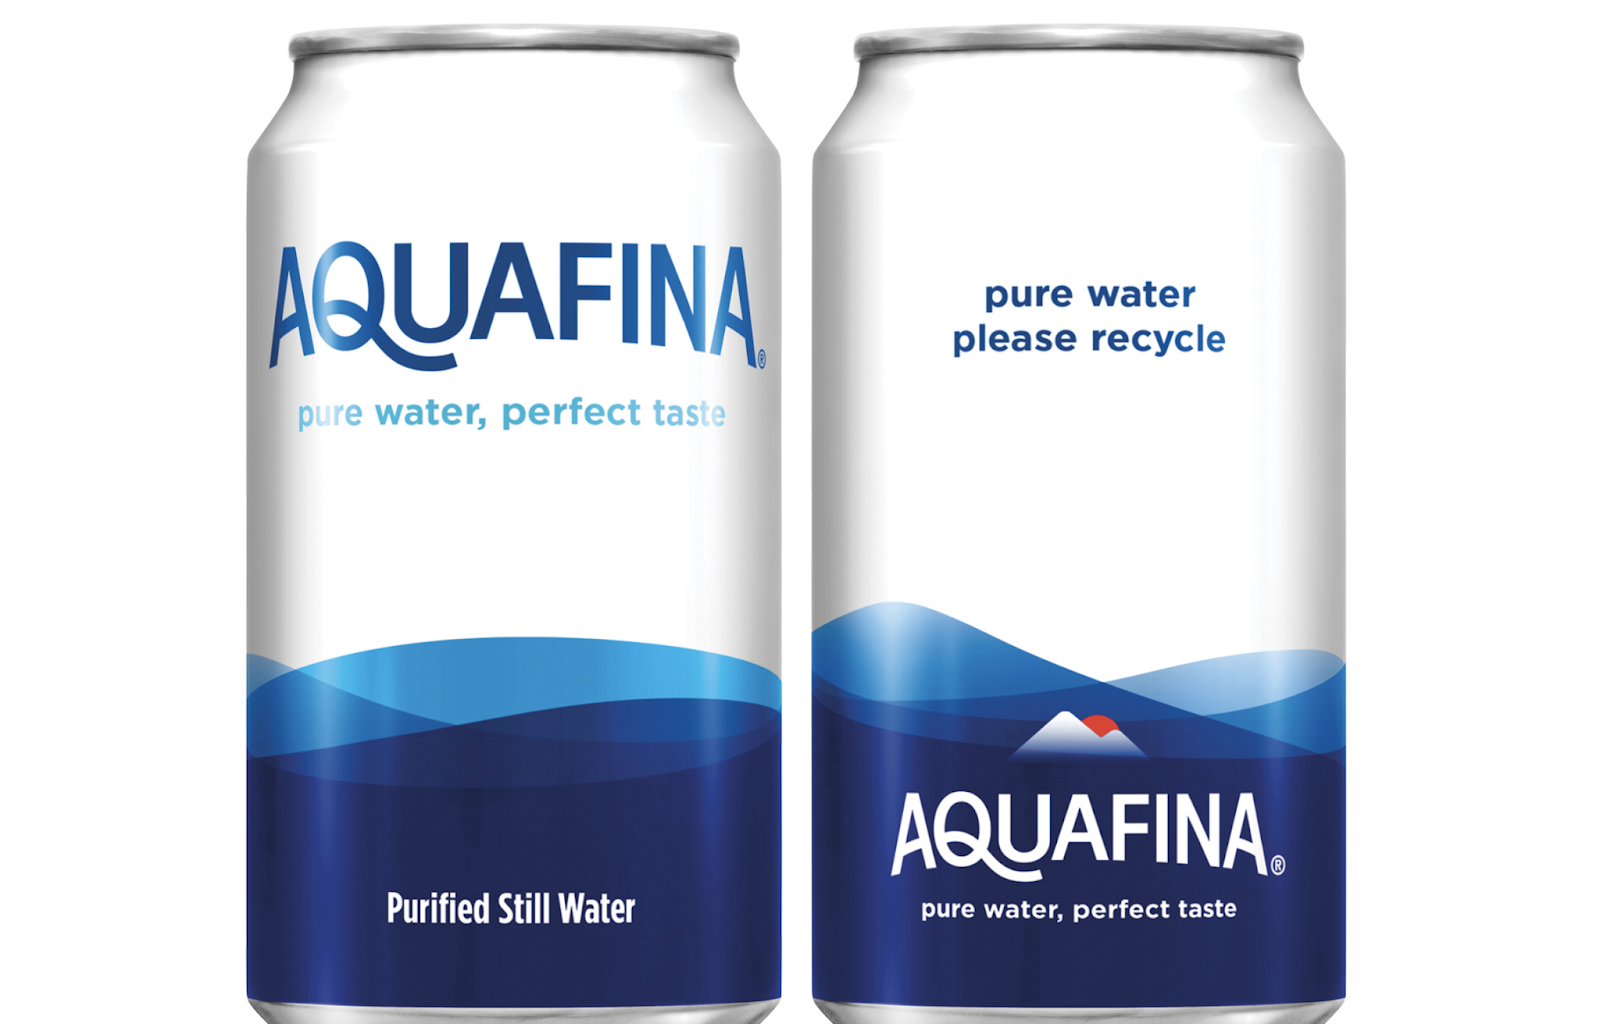 #Pepsi To Reduce Plastic Use By Replacing Aquafina Bottles With Cans